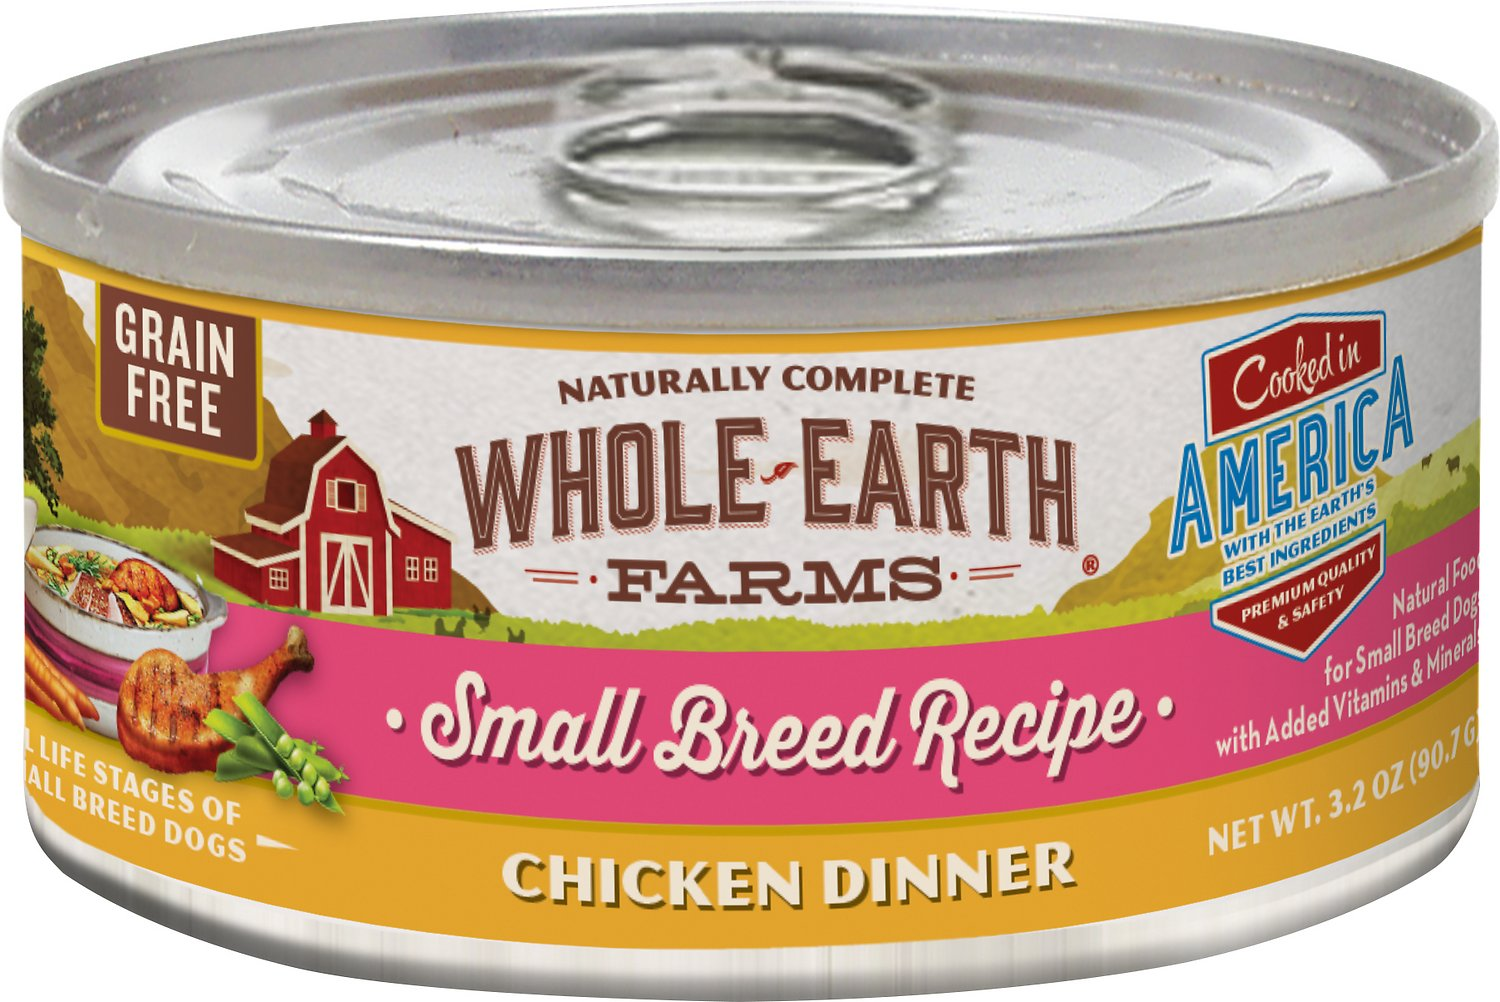 Whole Earth Farms Small Breed Dog Food Review